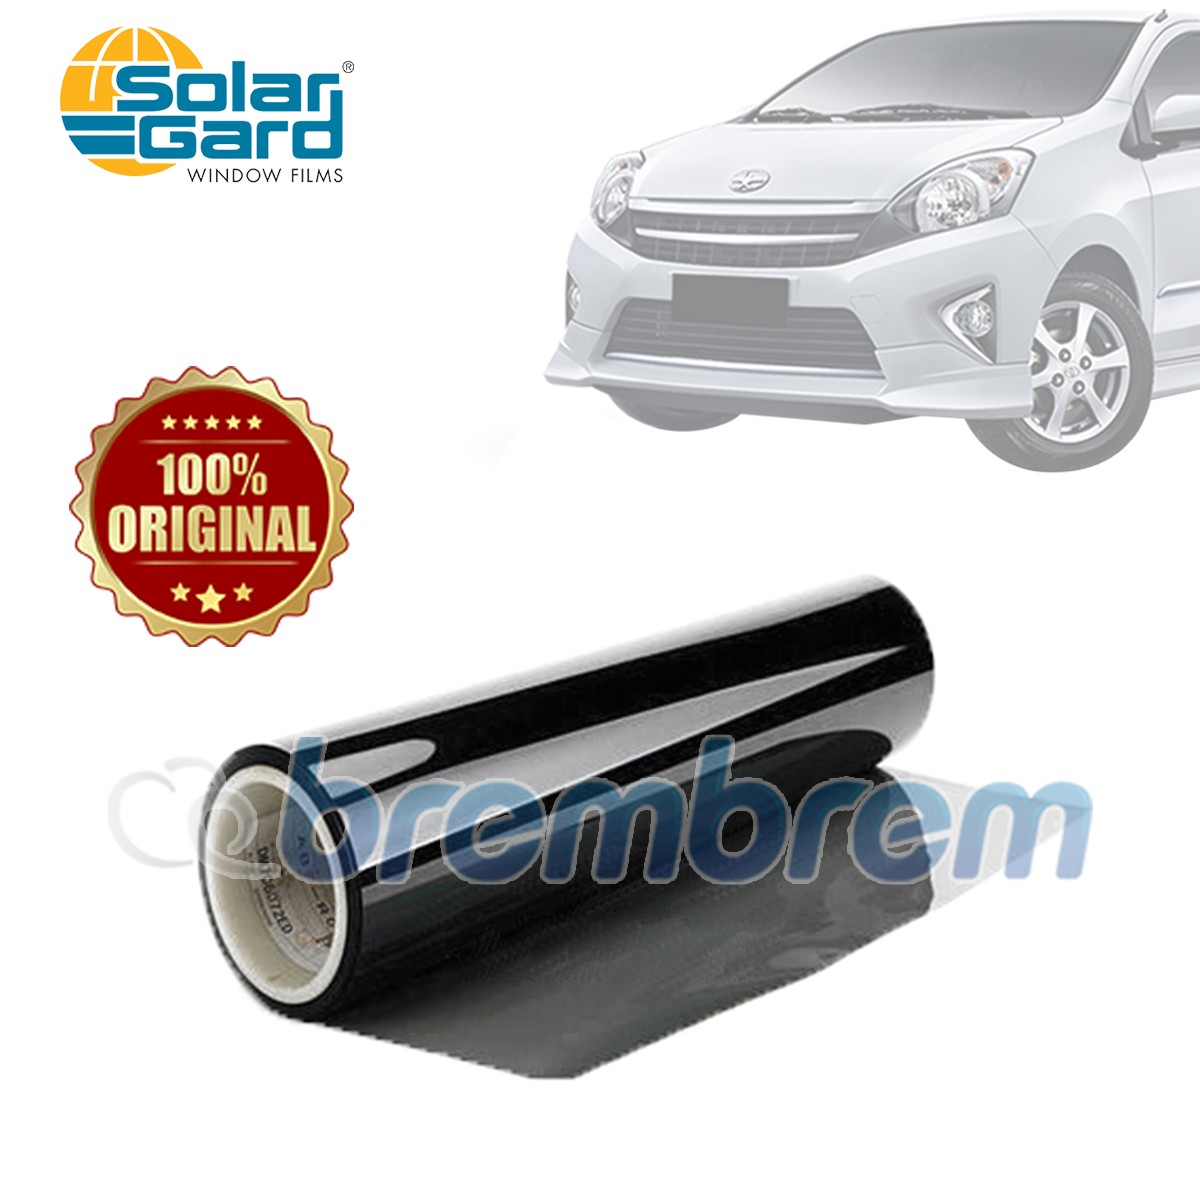 KACA FILM SOLAR GARD BLACK PHANTOM - (SMALL CAR) FULL KACA